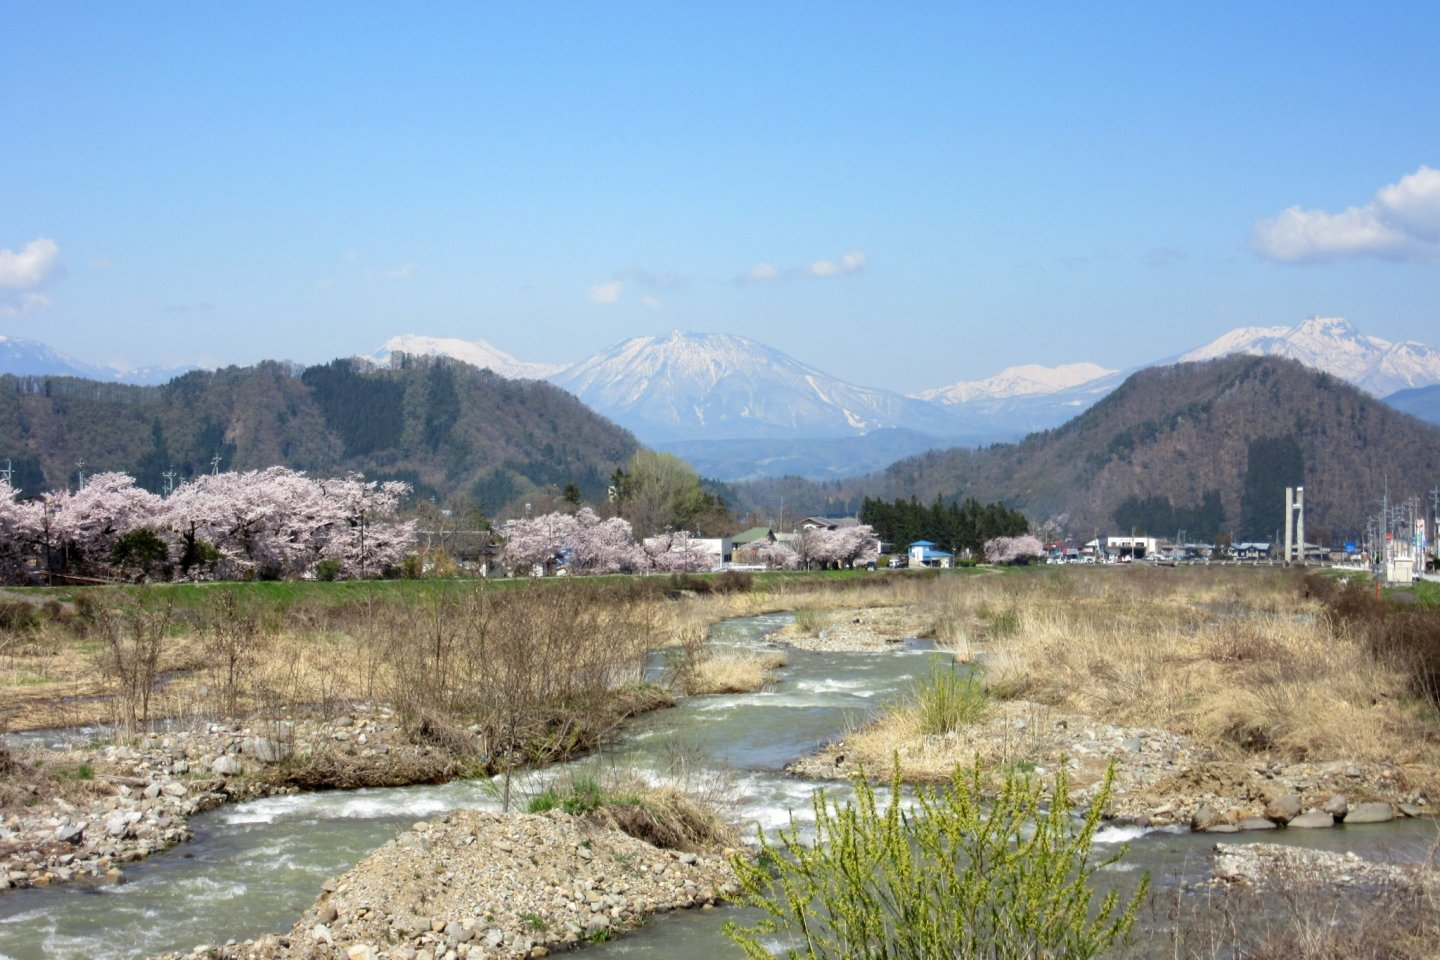 The view of Yudanaka